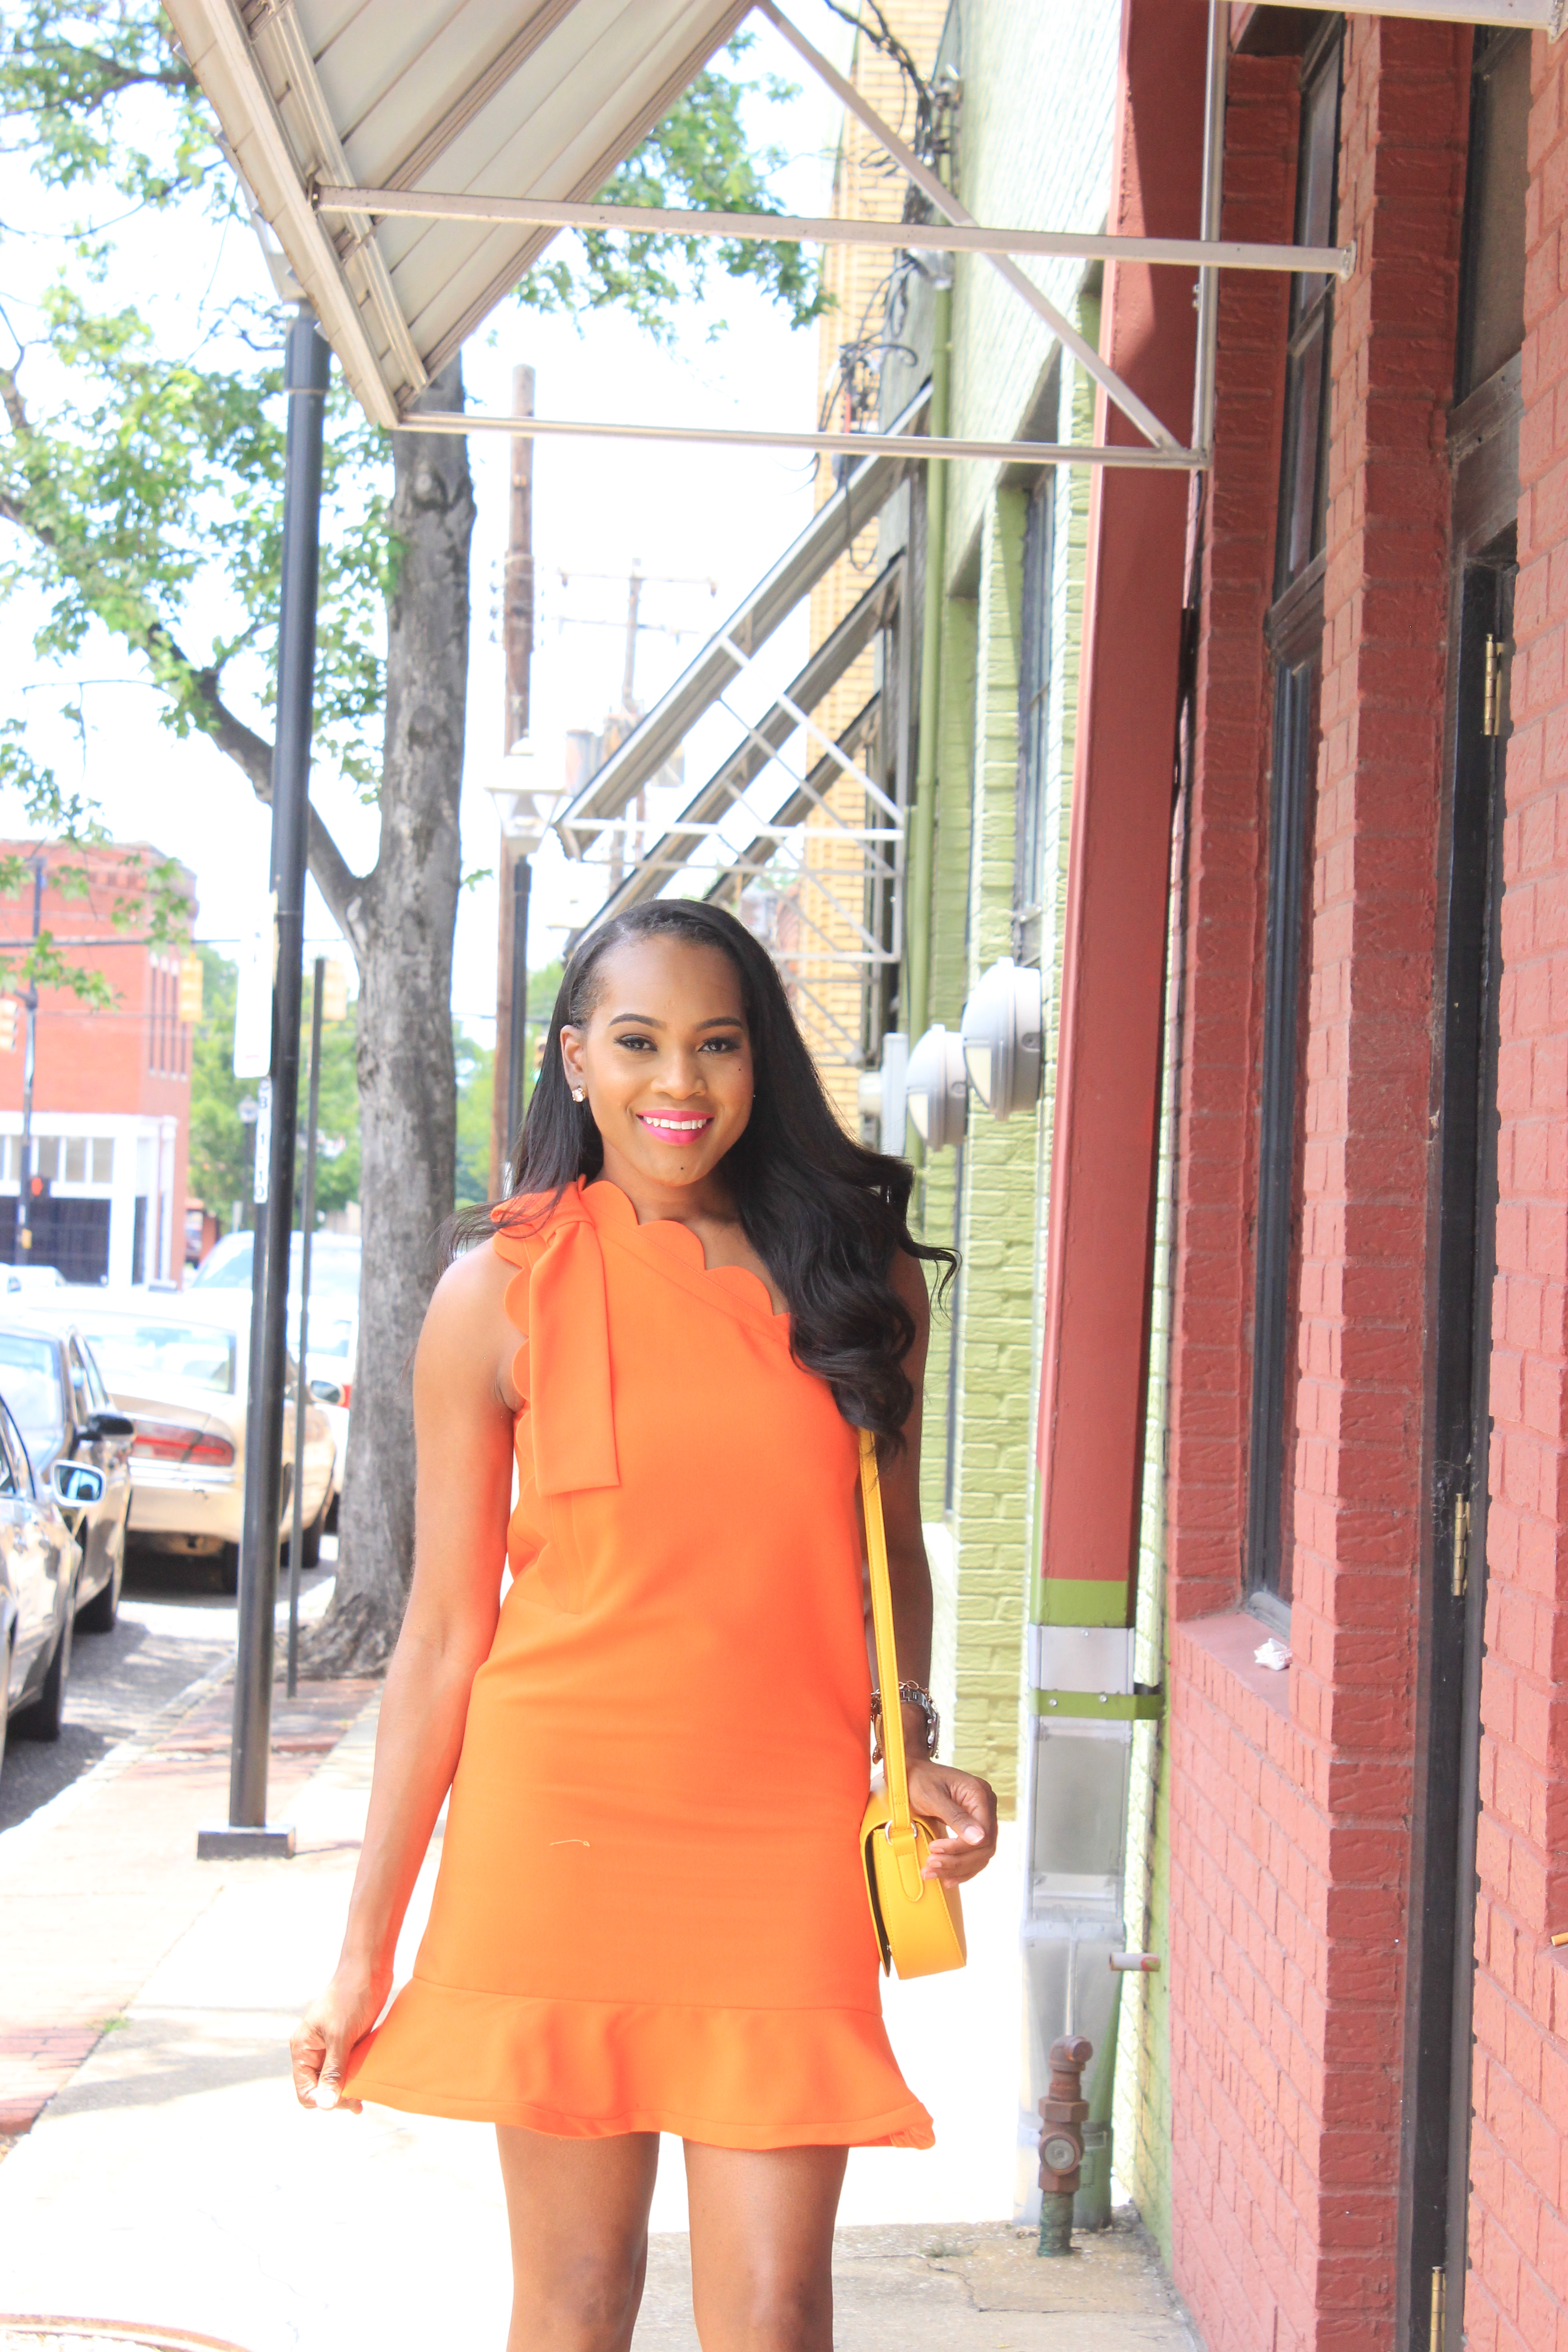 Style-Files-Orange-One Shoulder Dress-with-Bow and-Scallop-Trim-Victoria Beckham-for-Target-How-to-wear-victoria-beckham-for-target-Victoria-Beckham-for-Target-Review-Justfab-orange-kati-ankle-strap-sandals-oohlalablog-